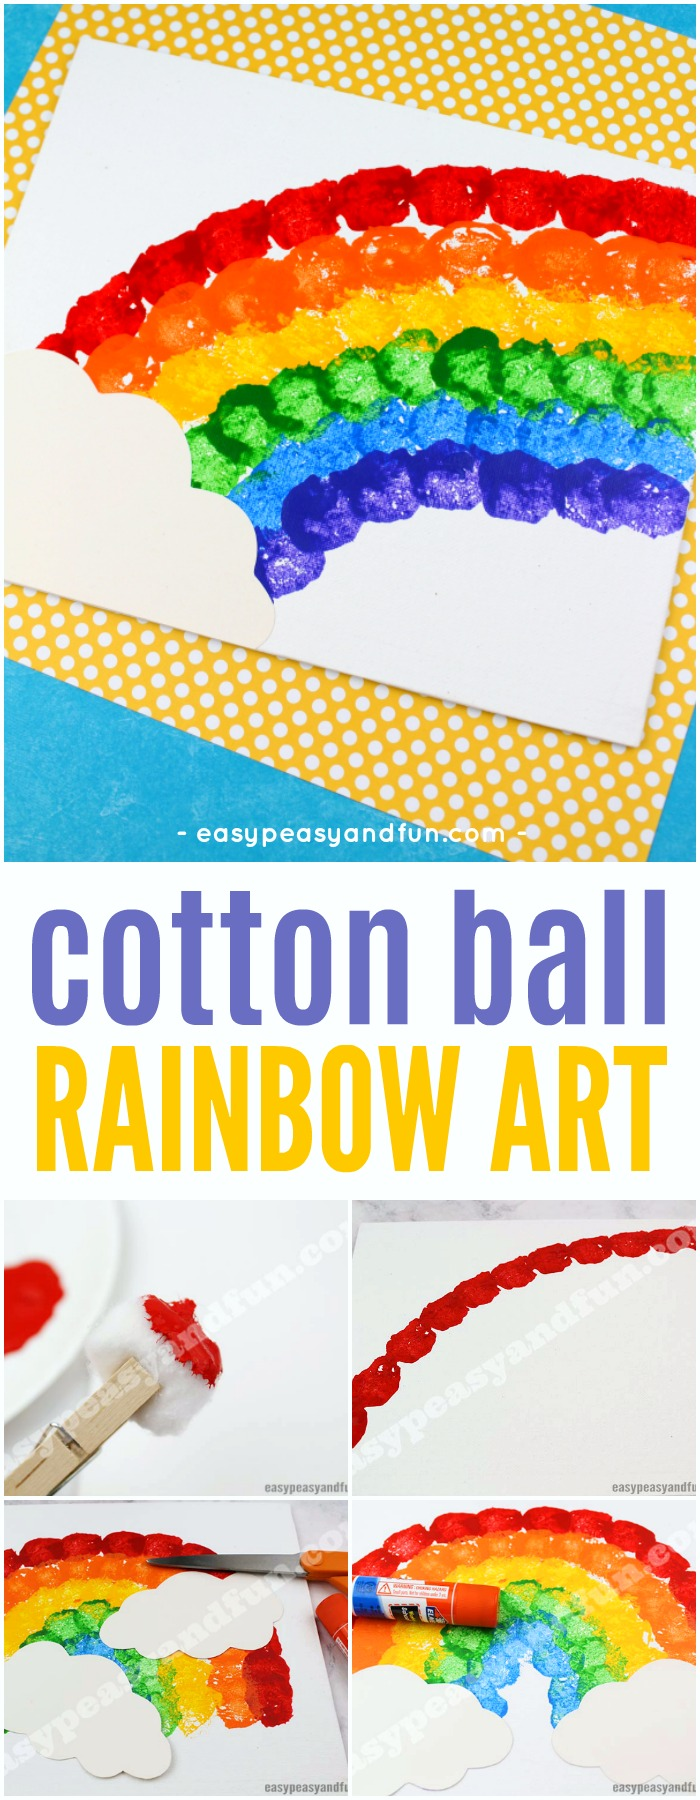 Cotton Ball Rainbow Art Idea for Kids #Springcrafts #rainbowcraft #artforkids